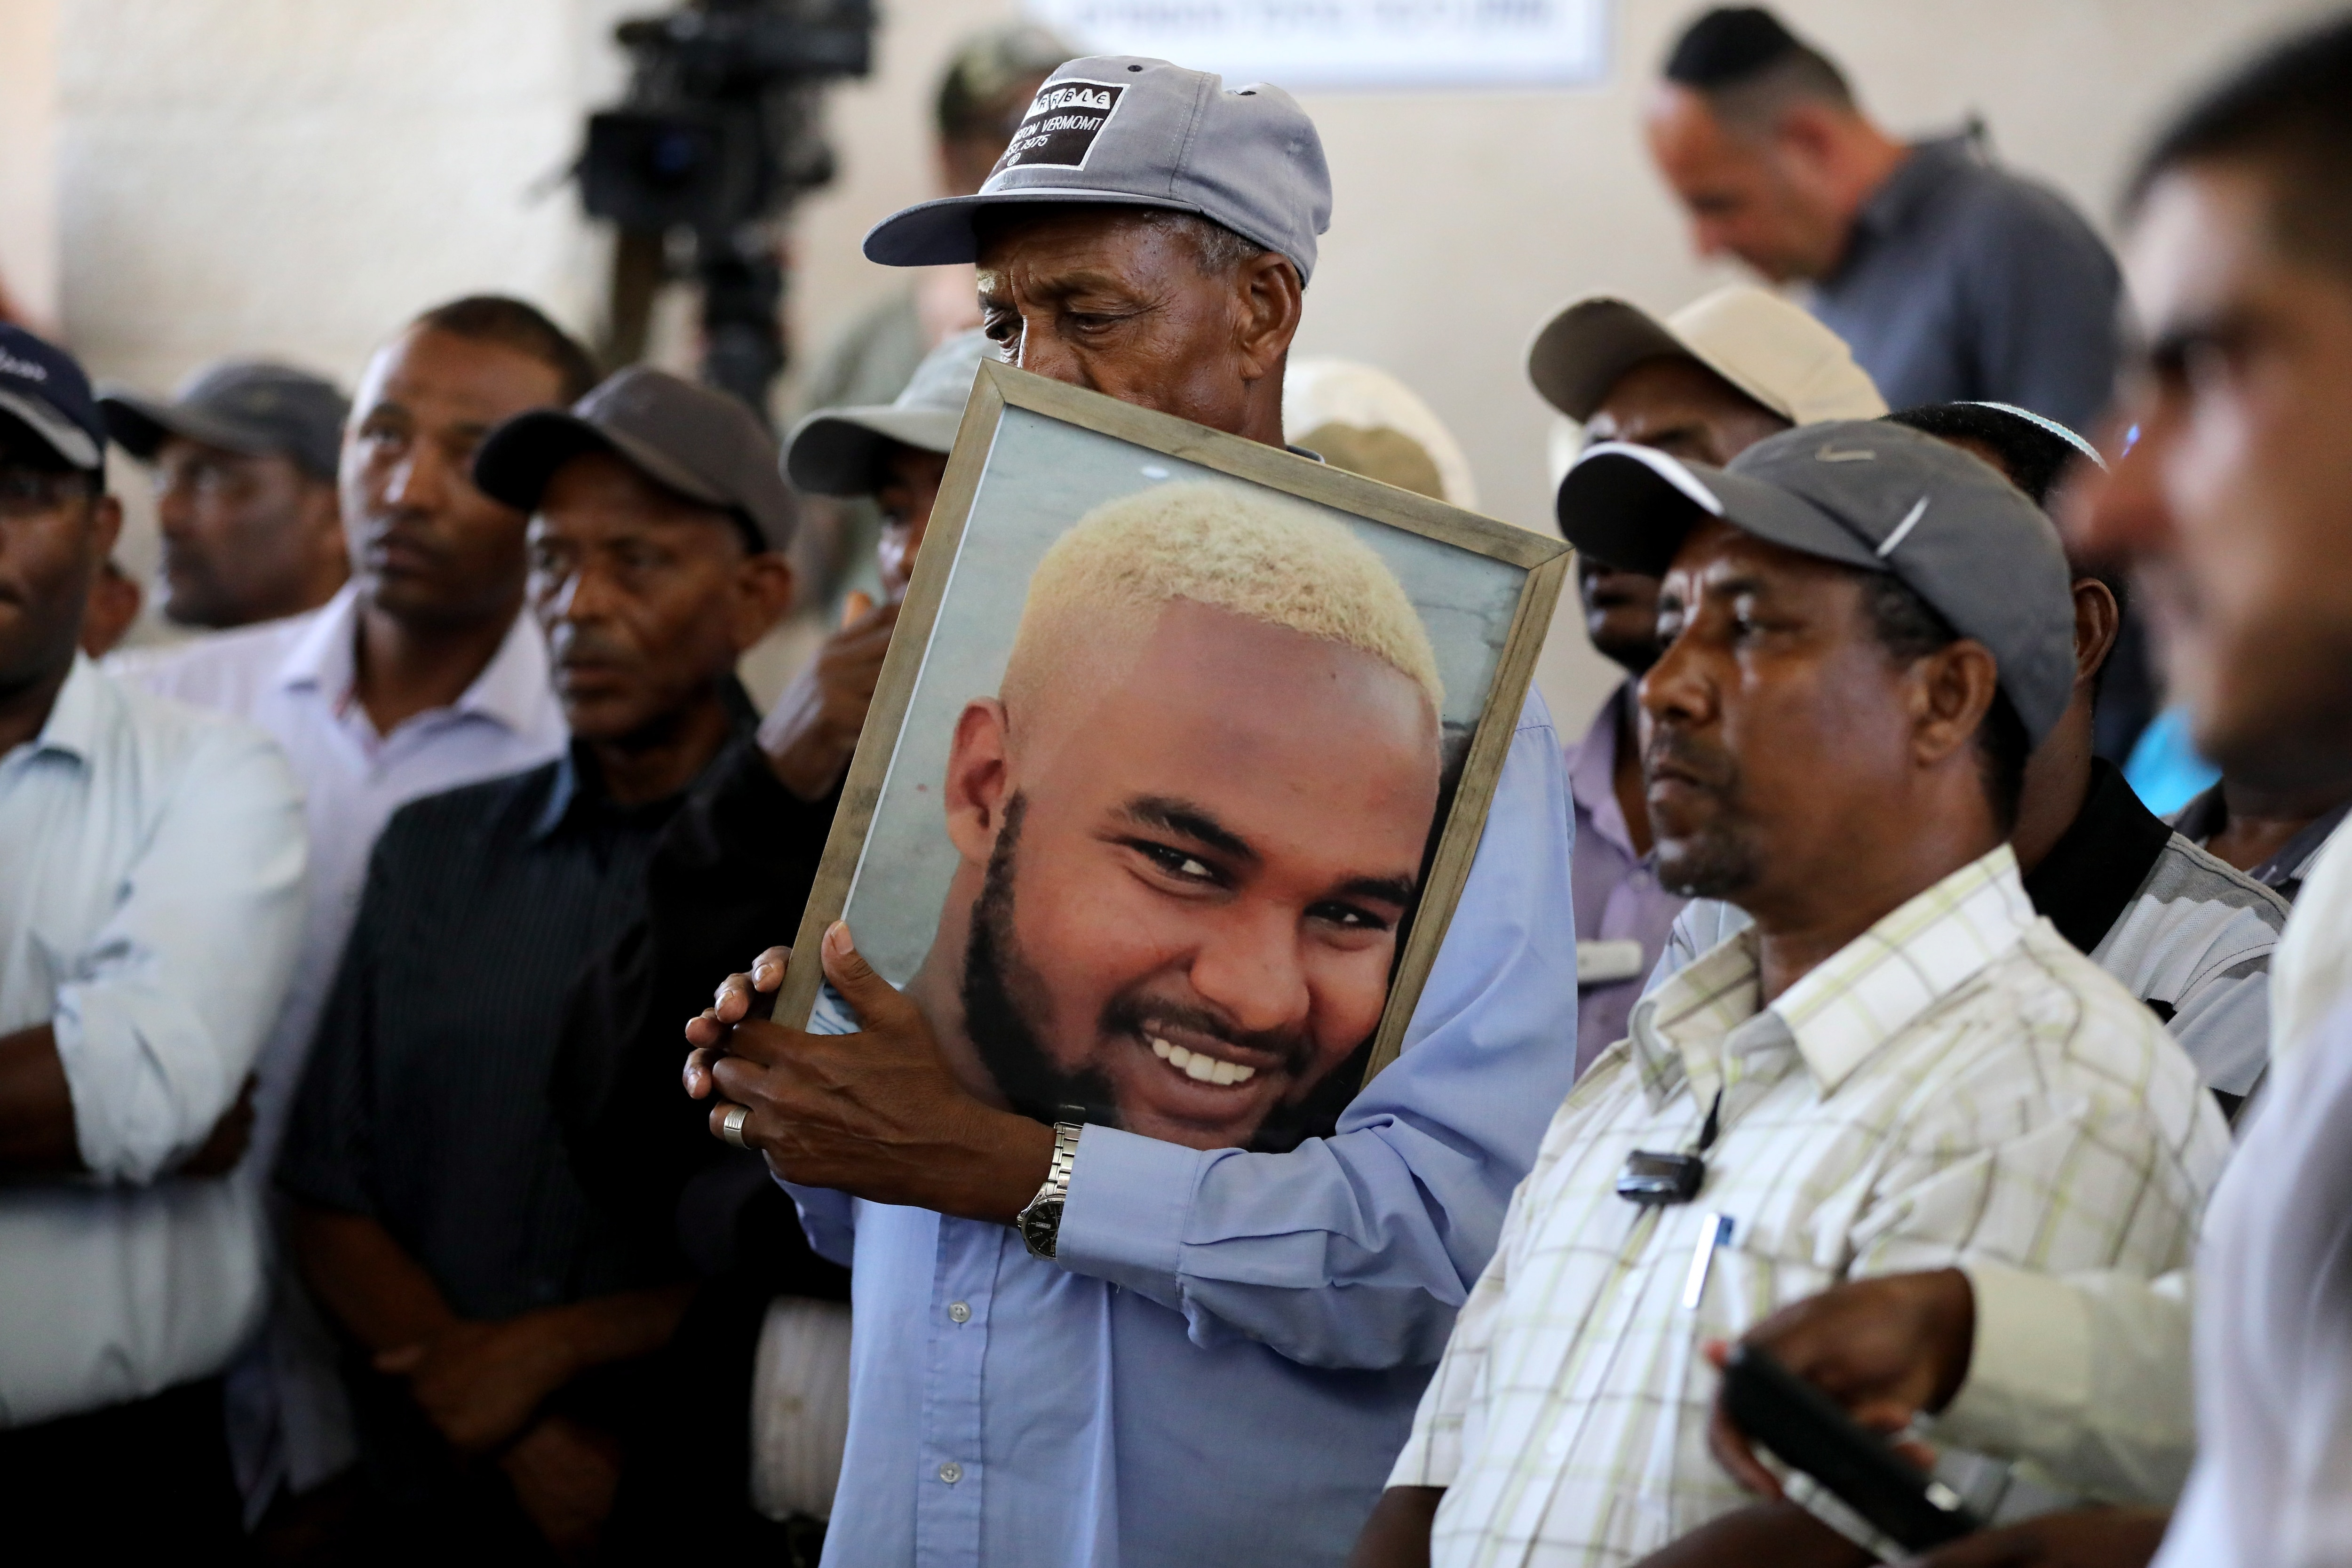 Family members and friends hold a picture and mourn Solomon Tekah, Israel, 02 July 2019.